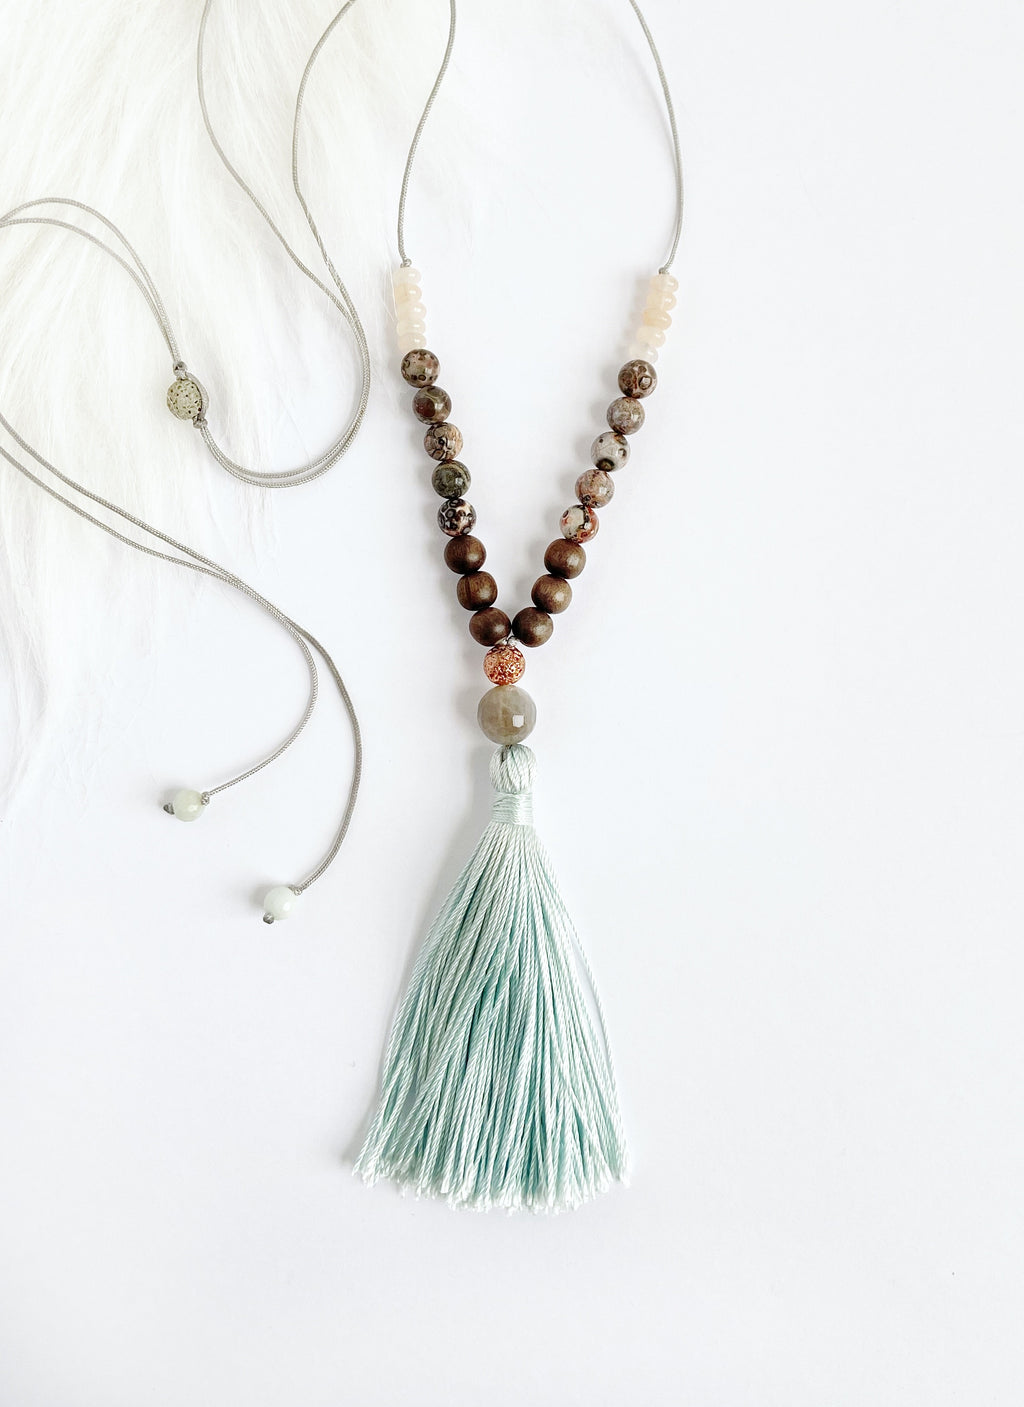 Moonstone & Jasper Necklace